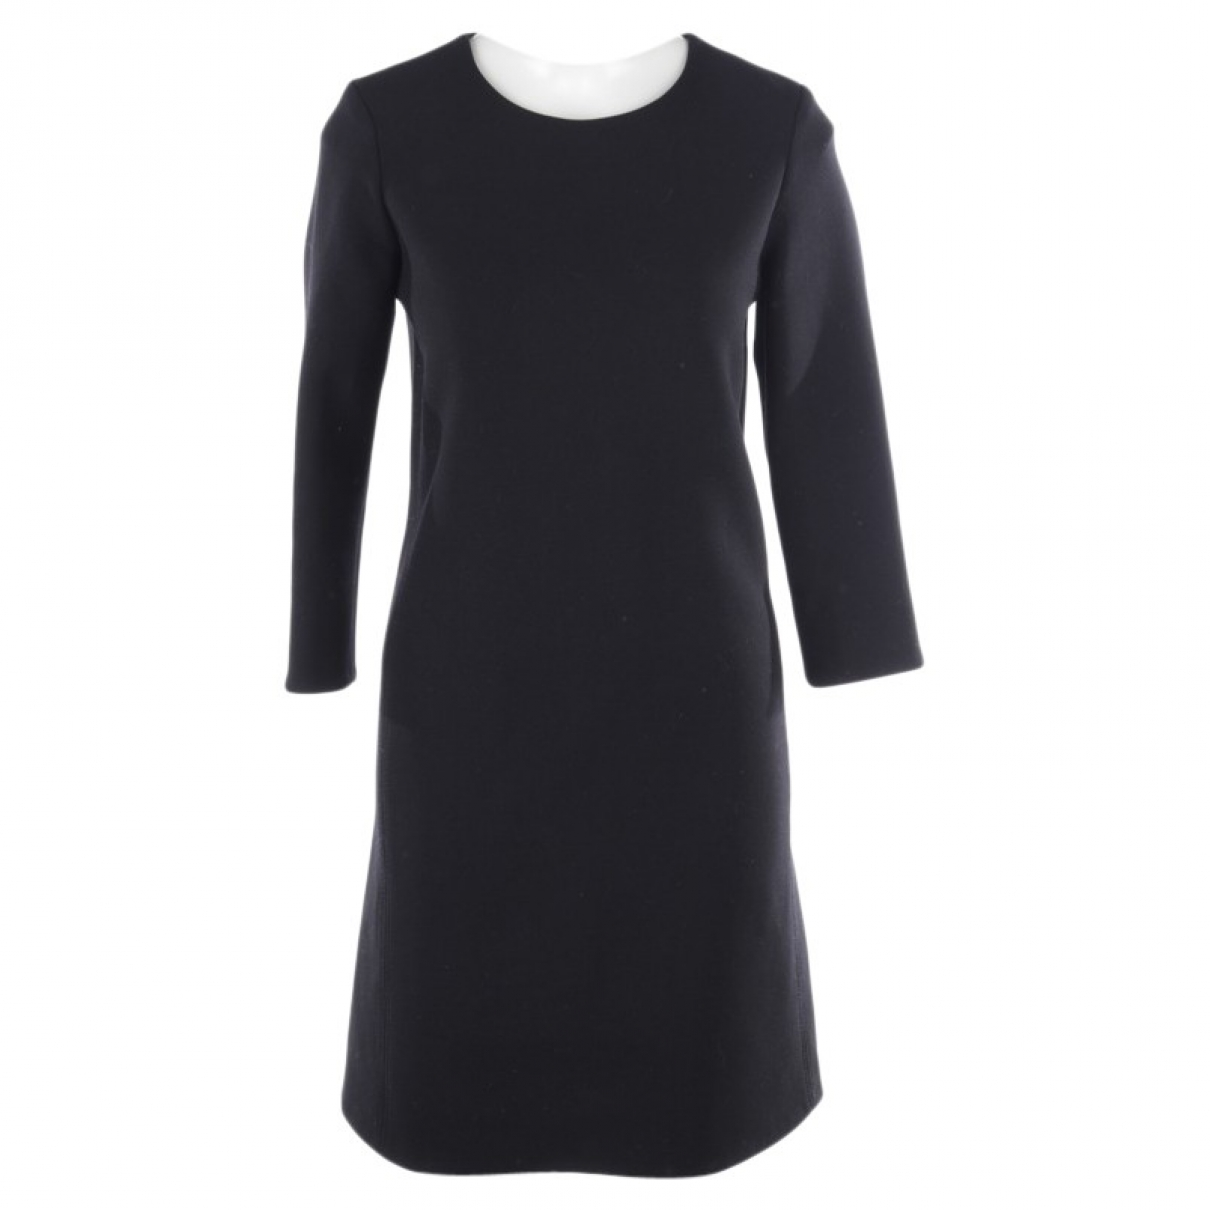 Dorothee Schumacher \N Black Wool dress for Women 34 FR